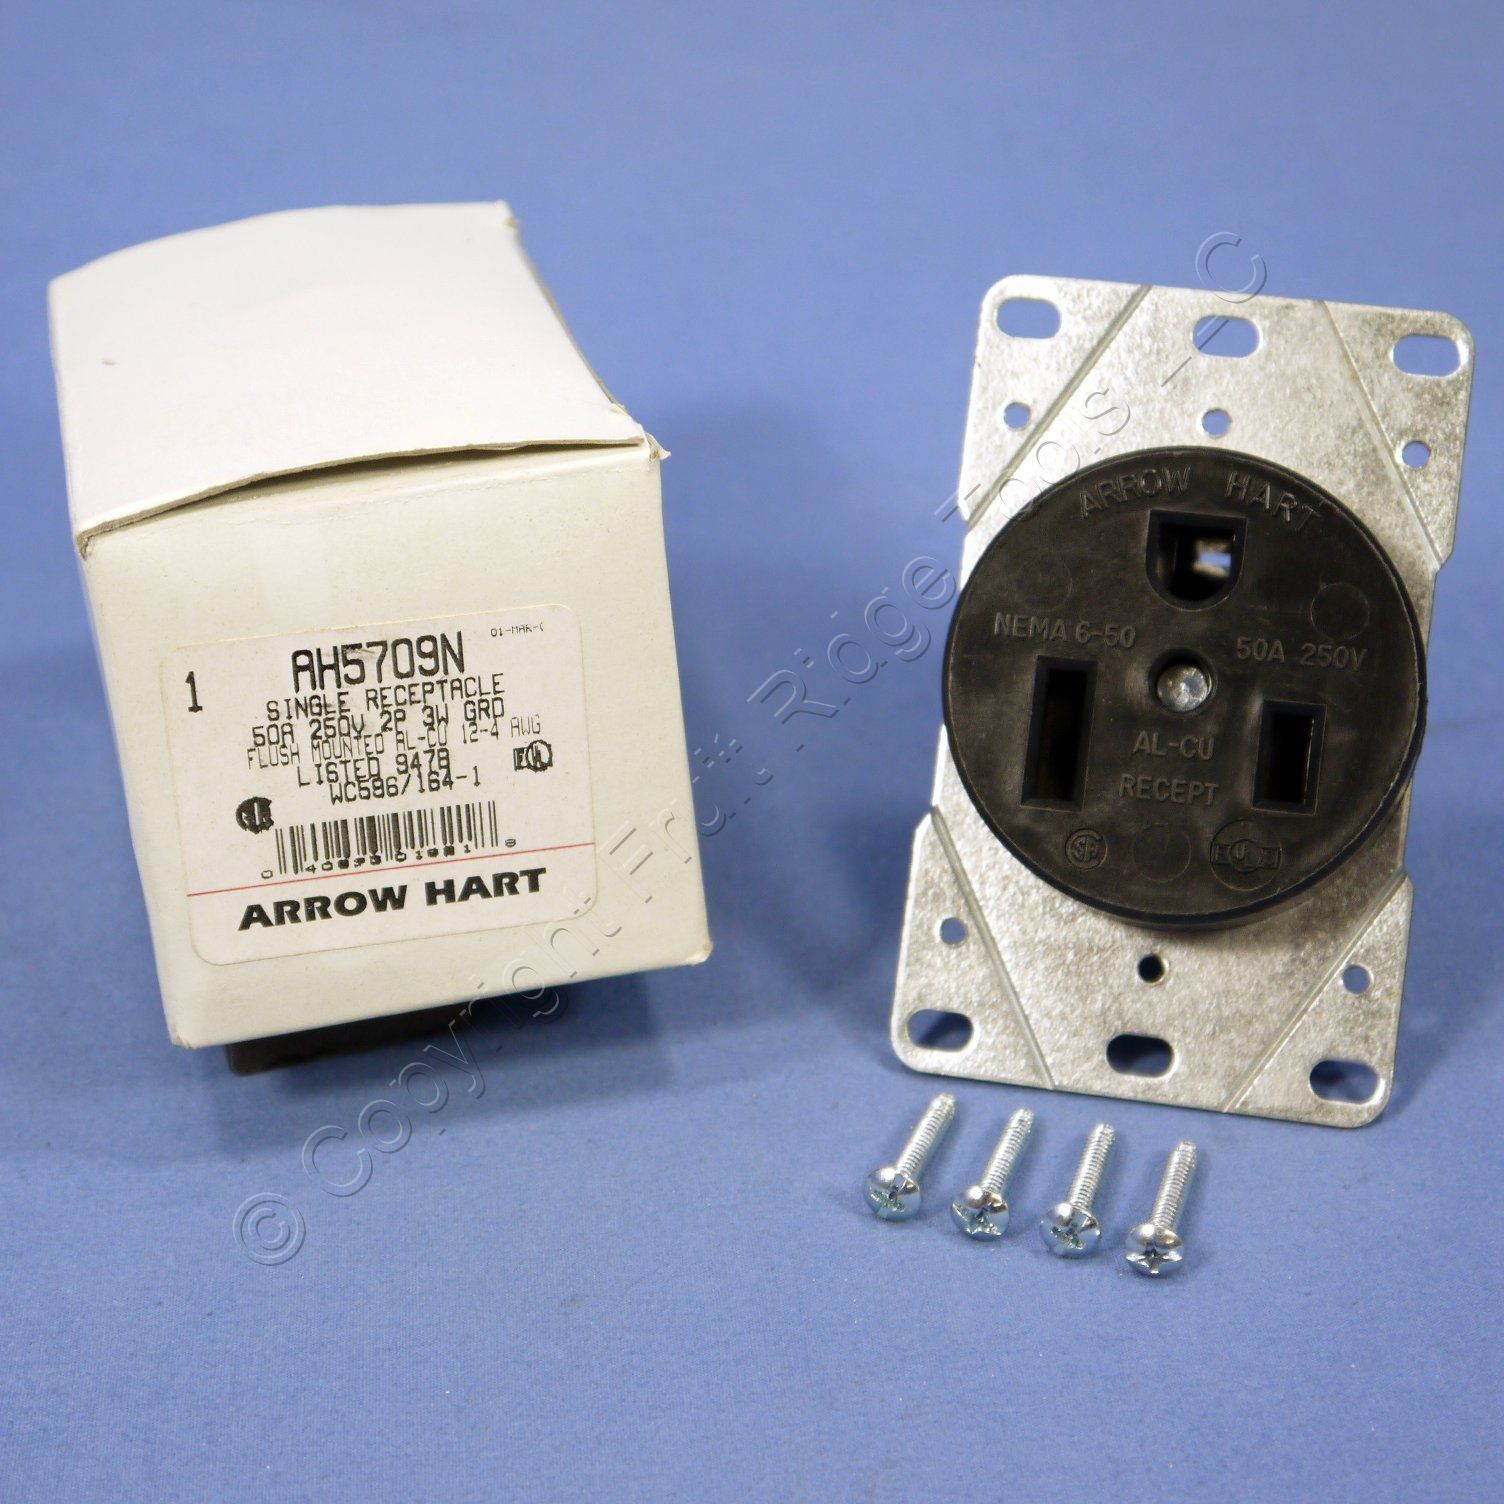 Arrow Hart Welder Outlet Receptacle 6 50 50a 250v Nema 50r 5709n Wiring Devices